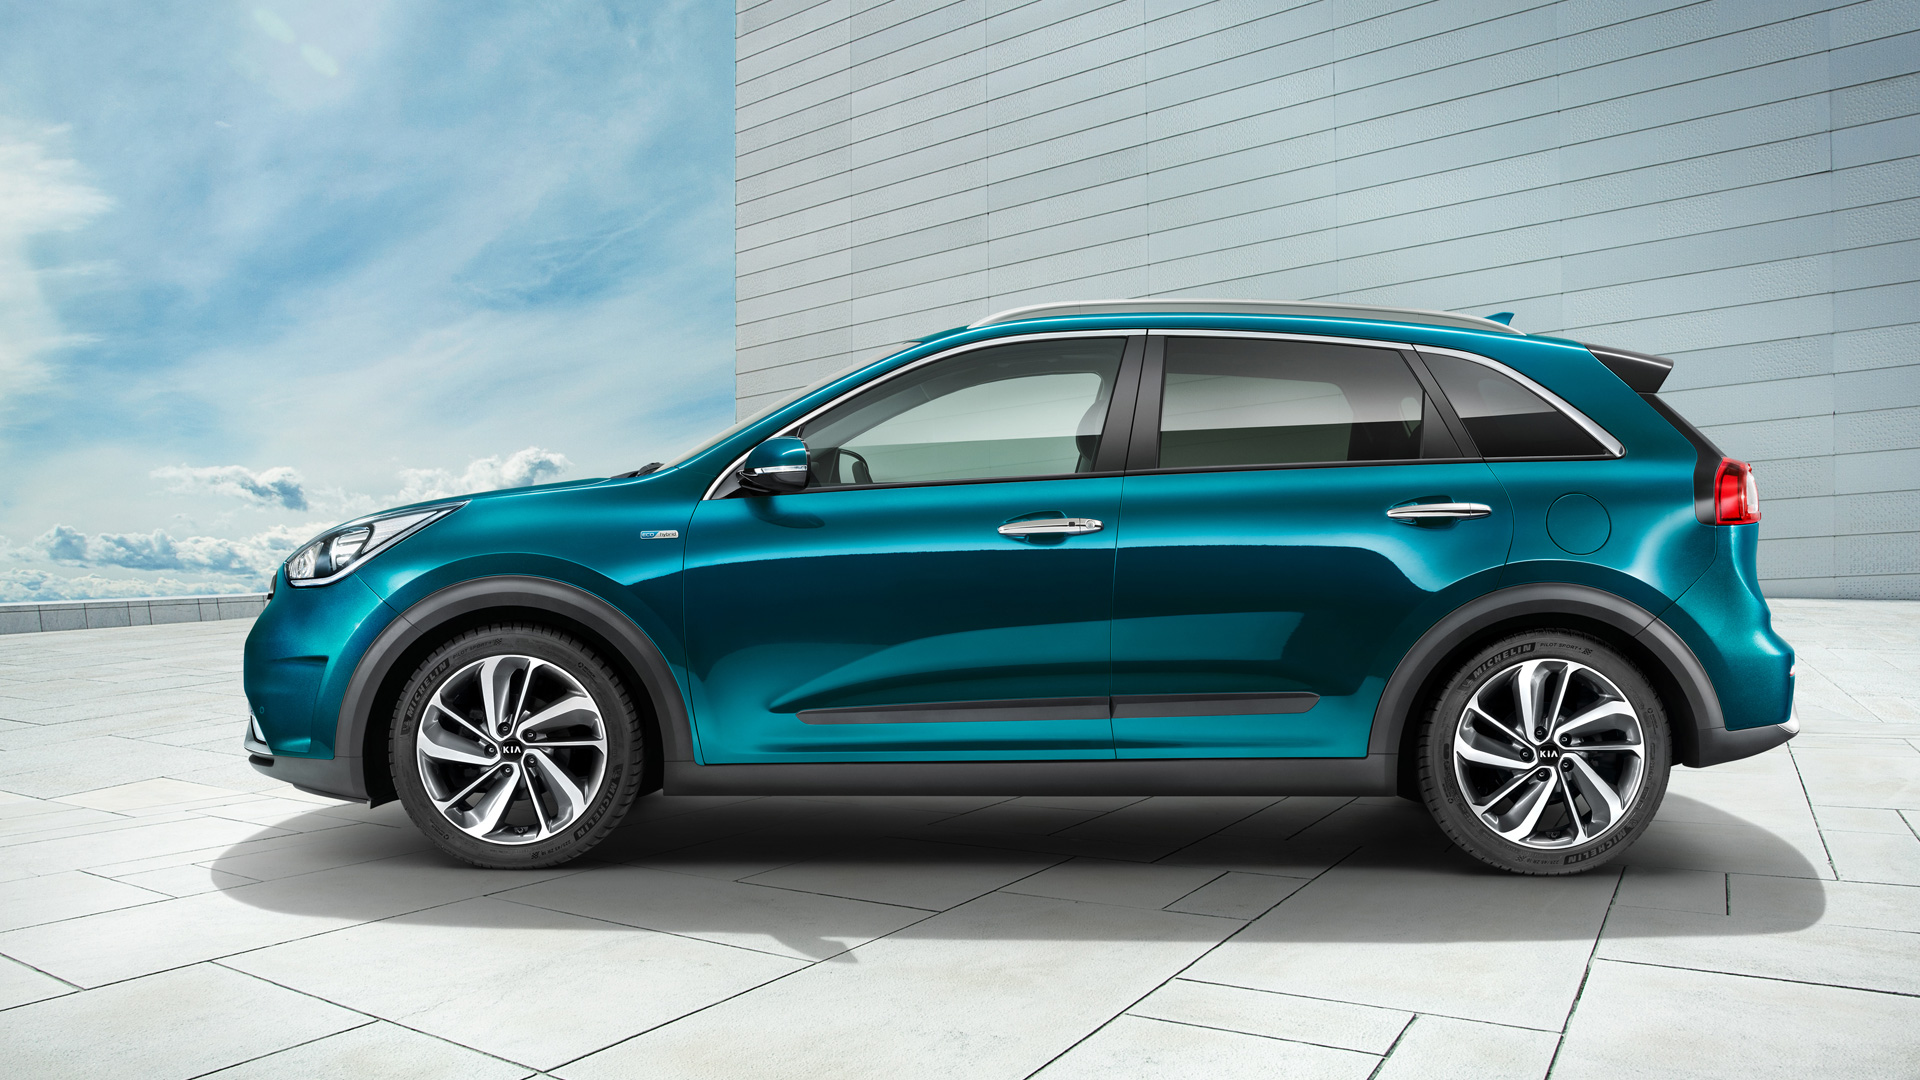 Kia New Cars >> The Kia Niro Will Come In Electric And Plug-In Variants - Taylor Kia Findlay